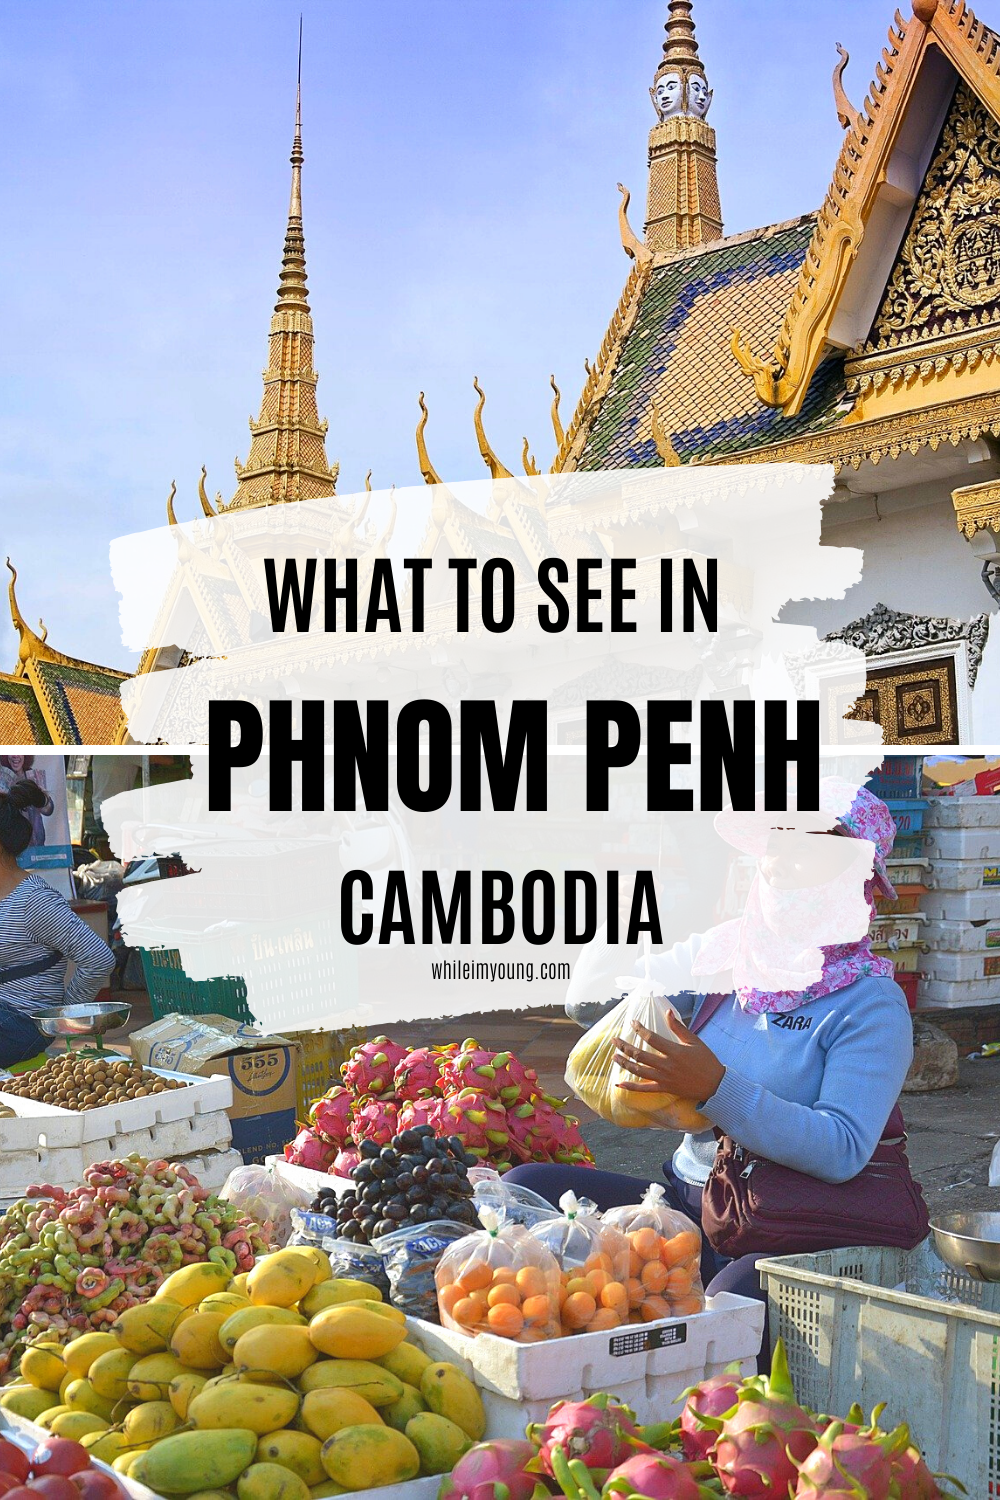 Click for a guide to what to do in Phnom Penh, Cambodia's metropolis. Get ideas for places to visit including the museums, Royal Palace and more hidden gems you can reach by river. You need to read this if you're planning to travel in Cambodia! The guide includes info about where to stay, how to get to Phnom Penh and some of the most popular tours and excursions. #PhnomPenh #Cambodia #travel #Photography #markets #river #views #ThingsToDoInPhnomPenh #food #bars #restaurant